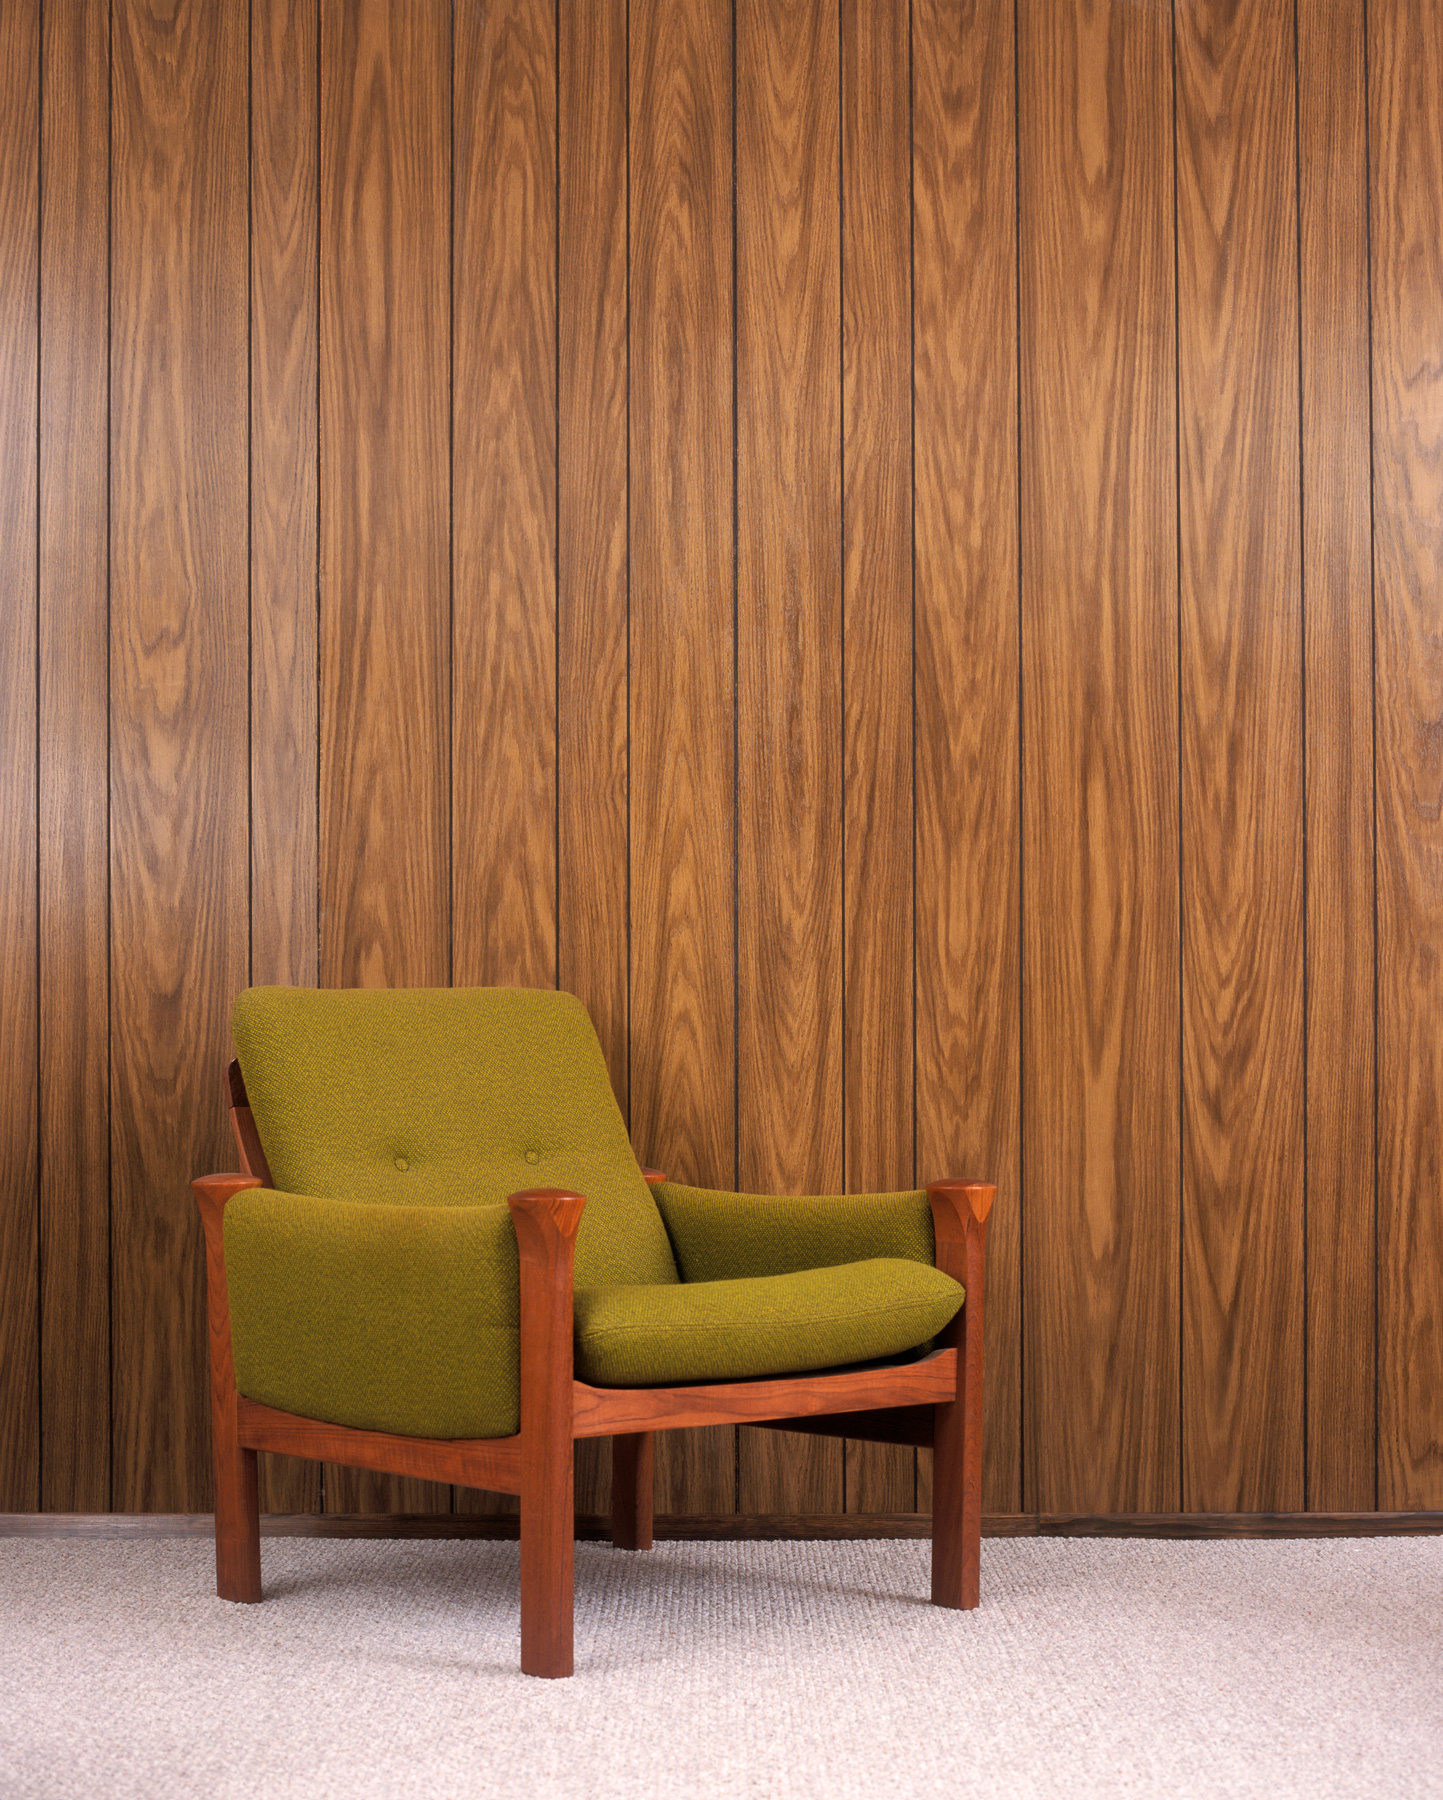 Chair in front of wood paneling